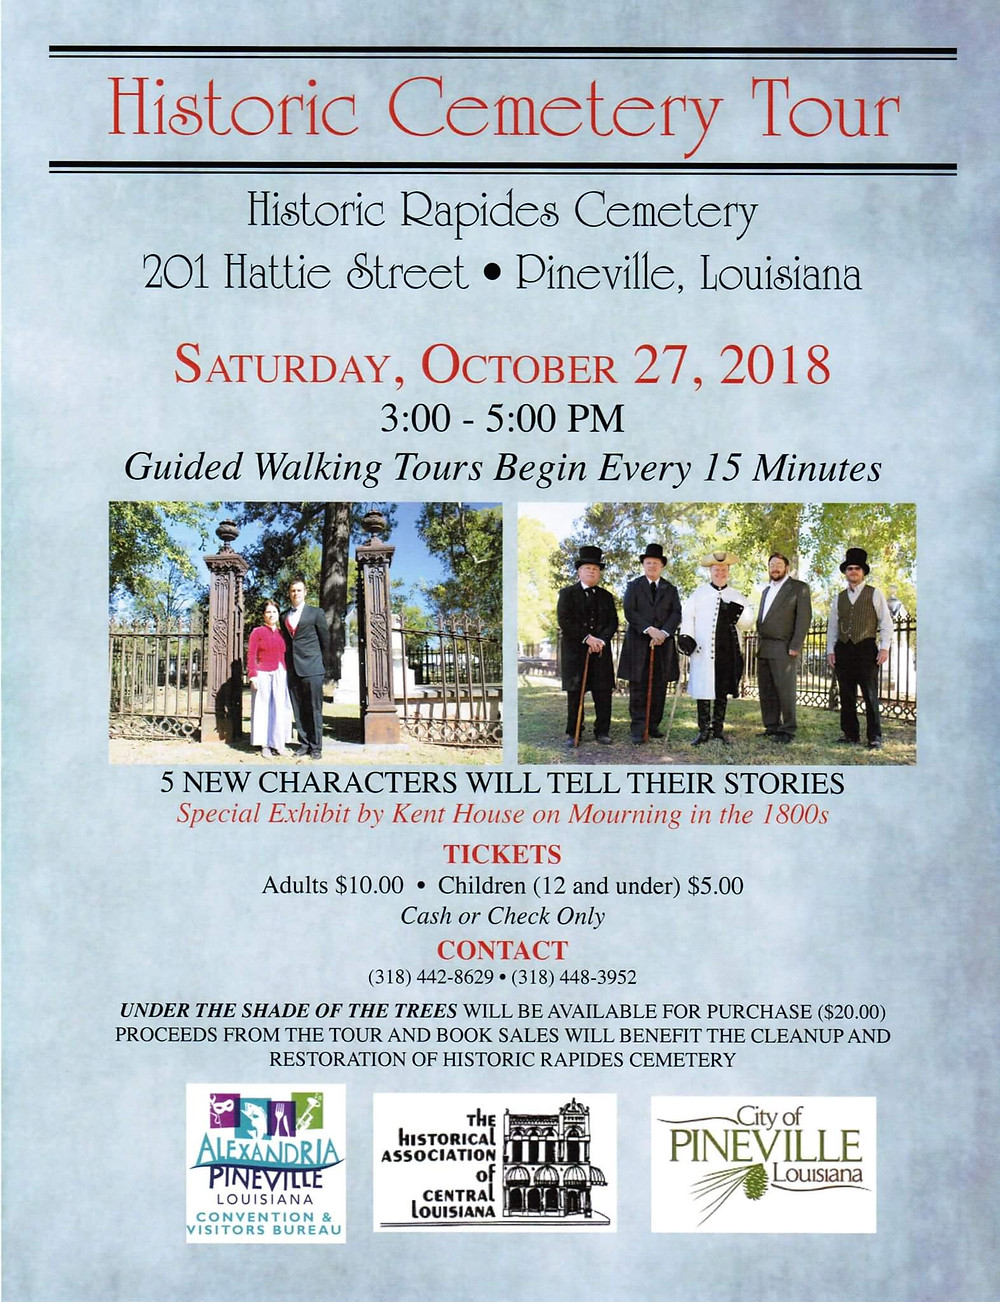 Saturday 10/27 3 - 5 p.m. Tours every 15 minutes